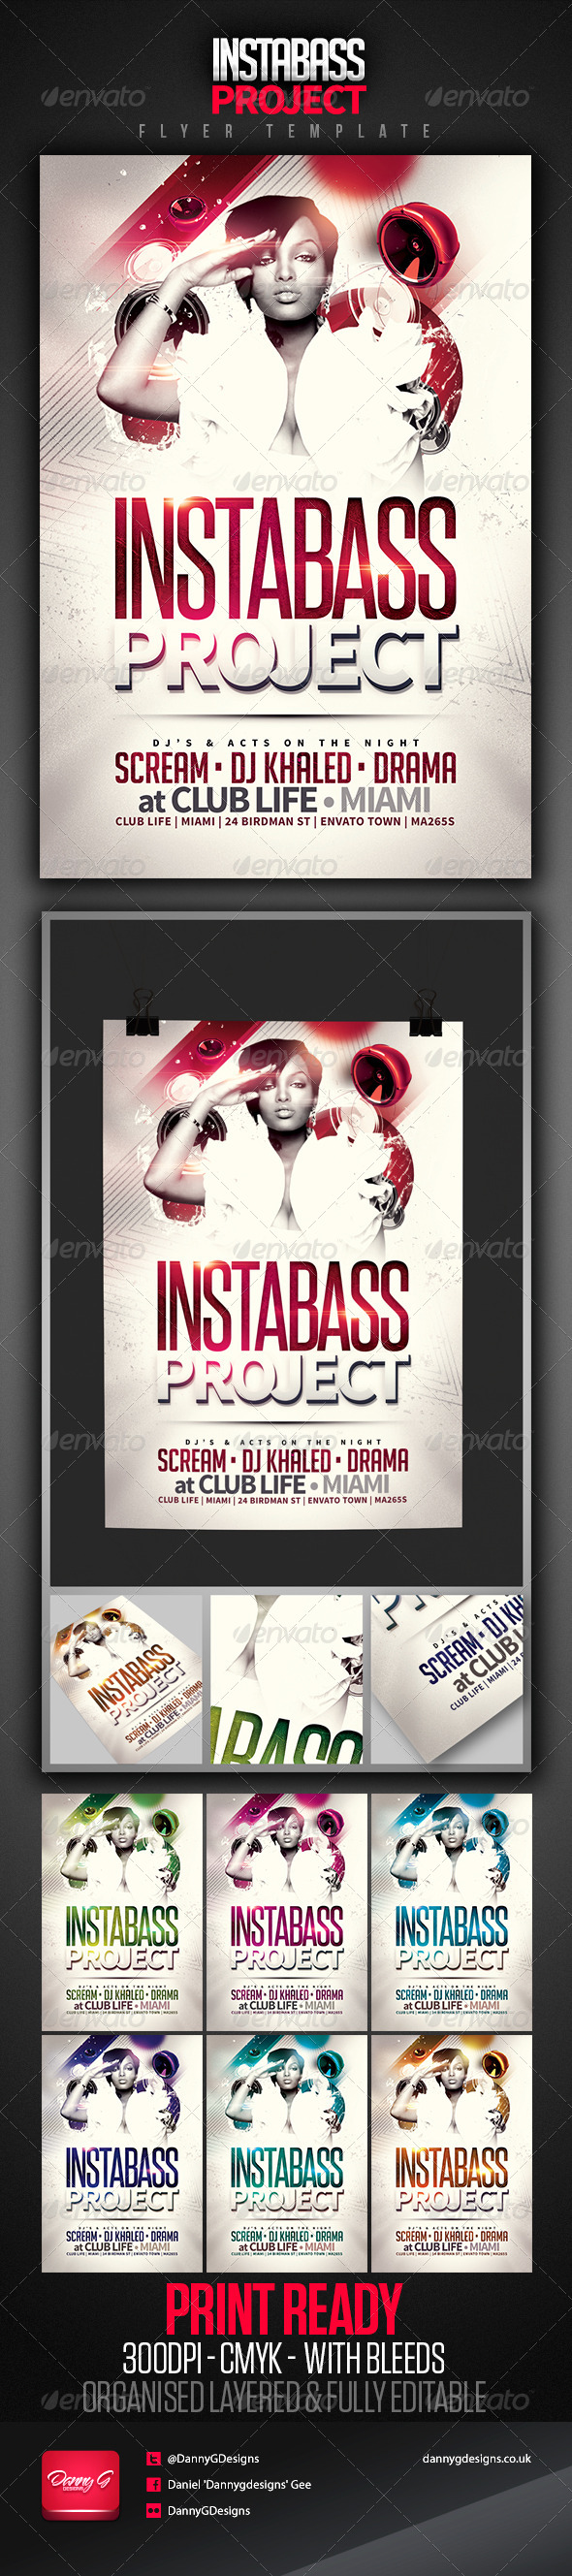 Instabass Project Party/Club Flyer Template - Clubs & Parties Events